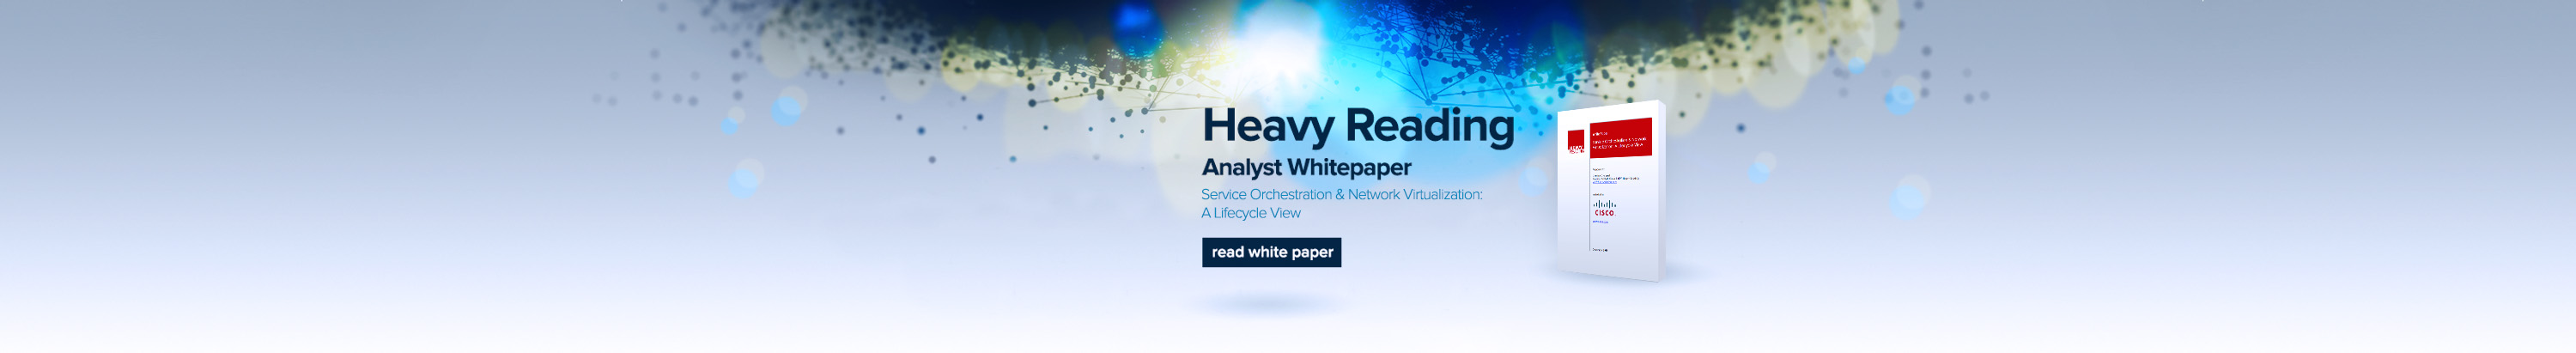 Heavy Reading White Paper